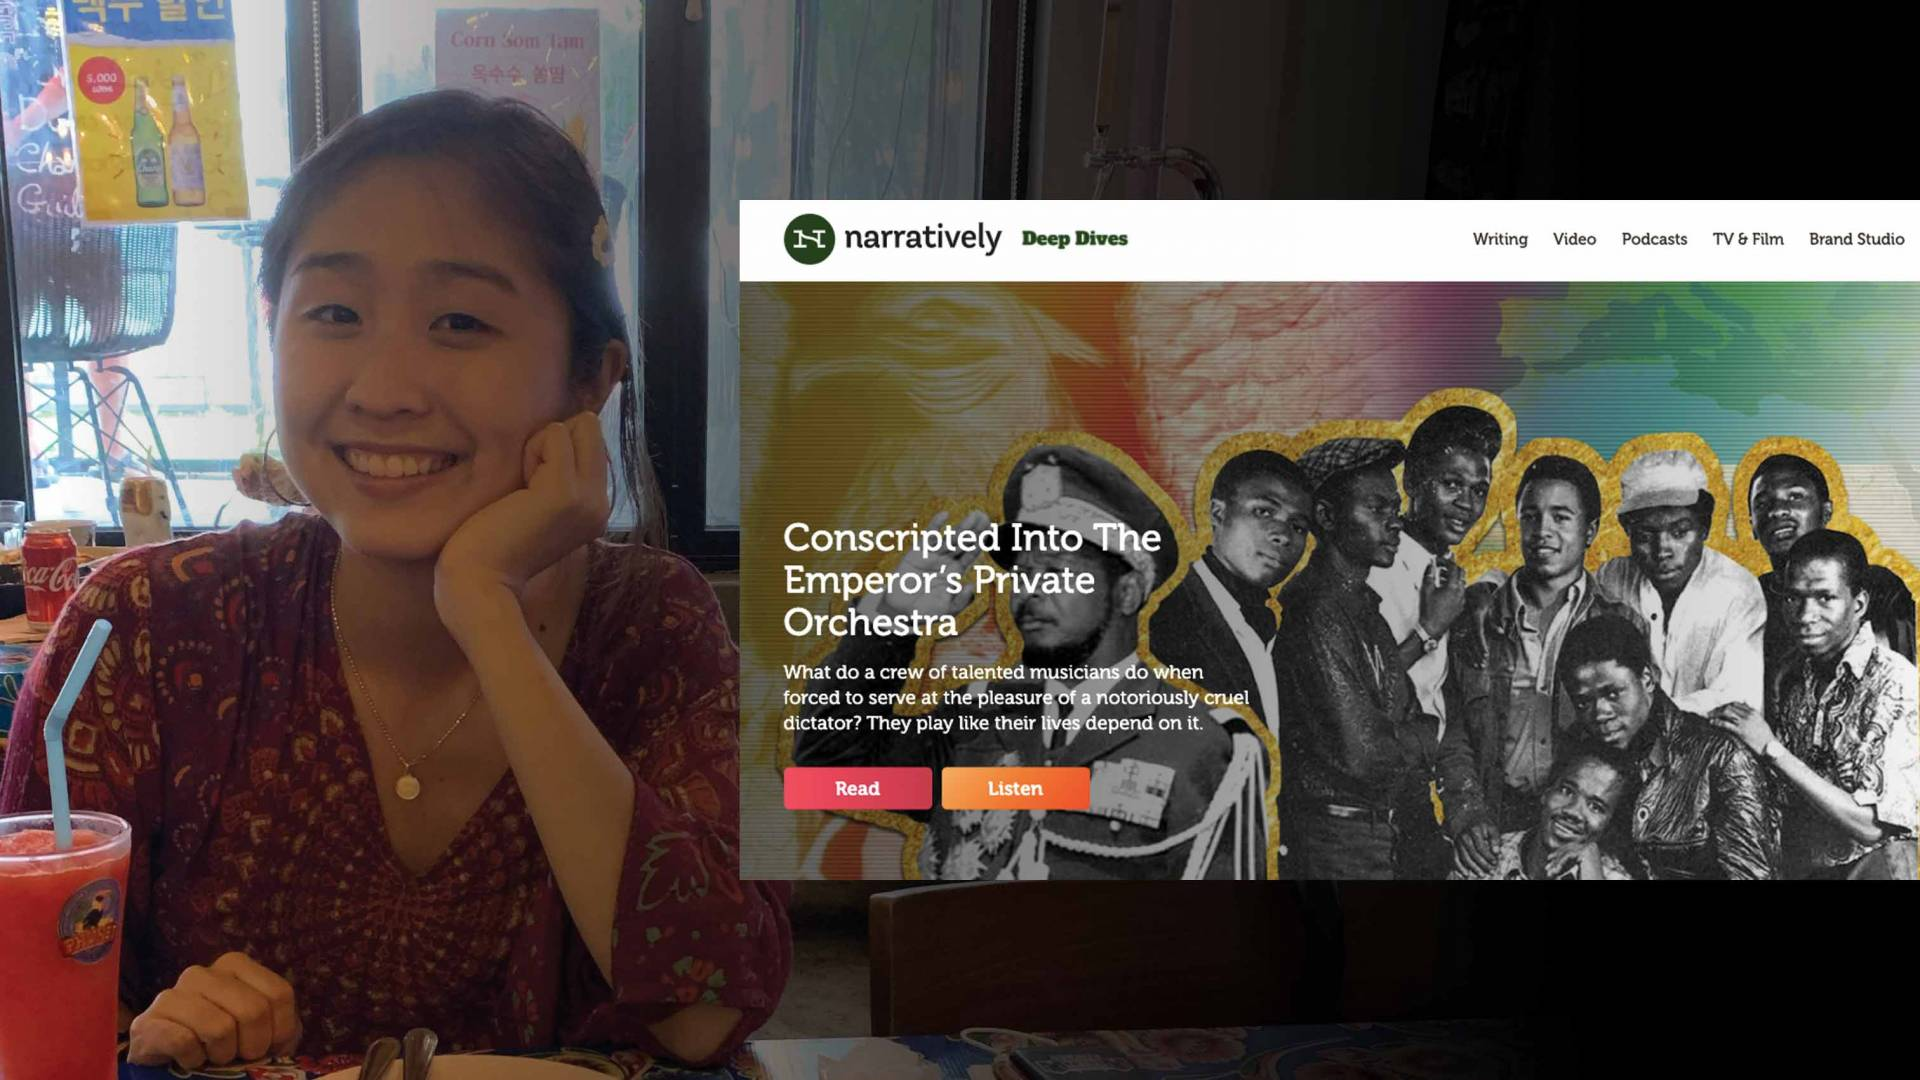 Jimin Kang and a scheetshot of her editorial work at Narratively